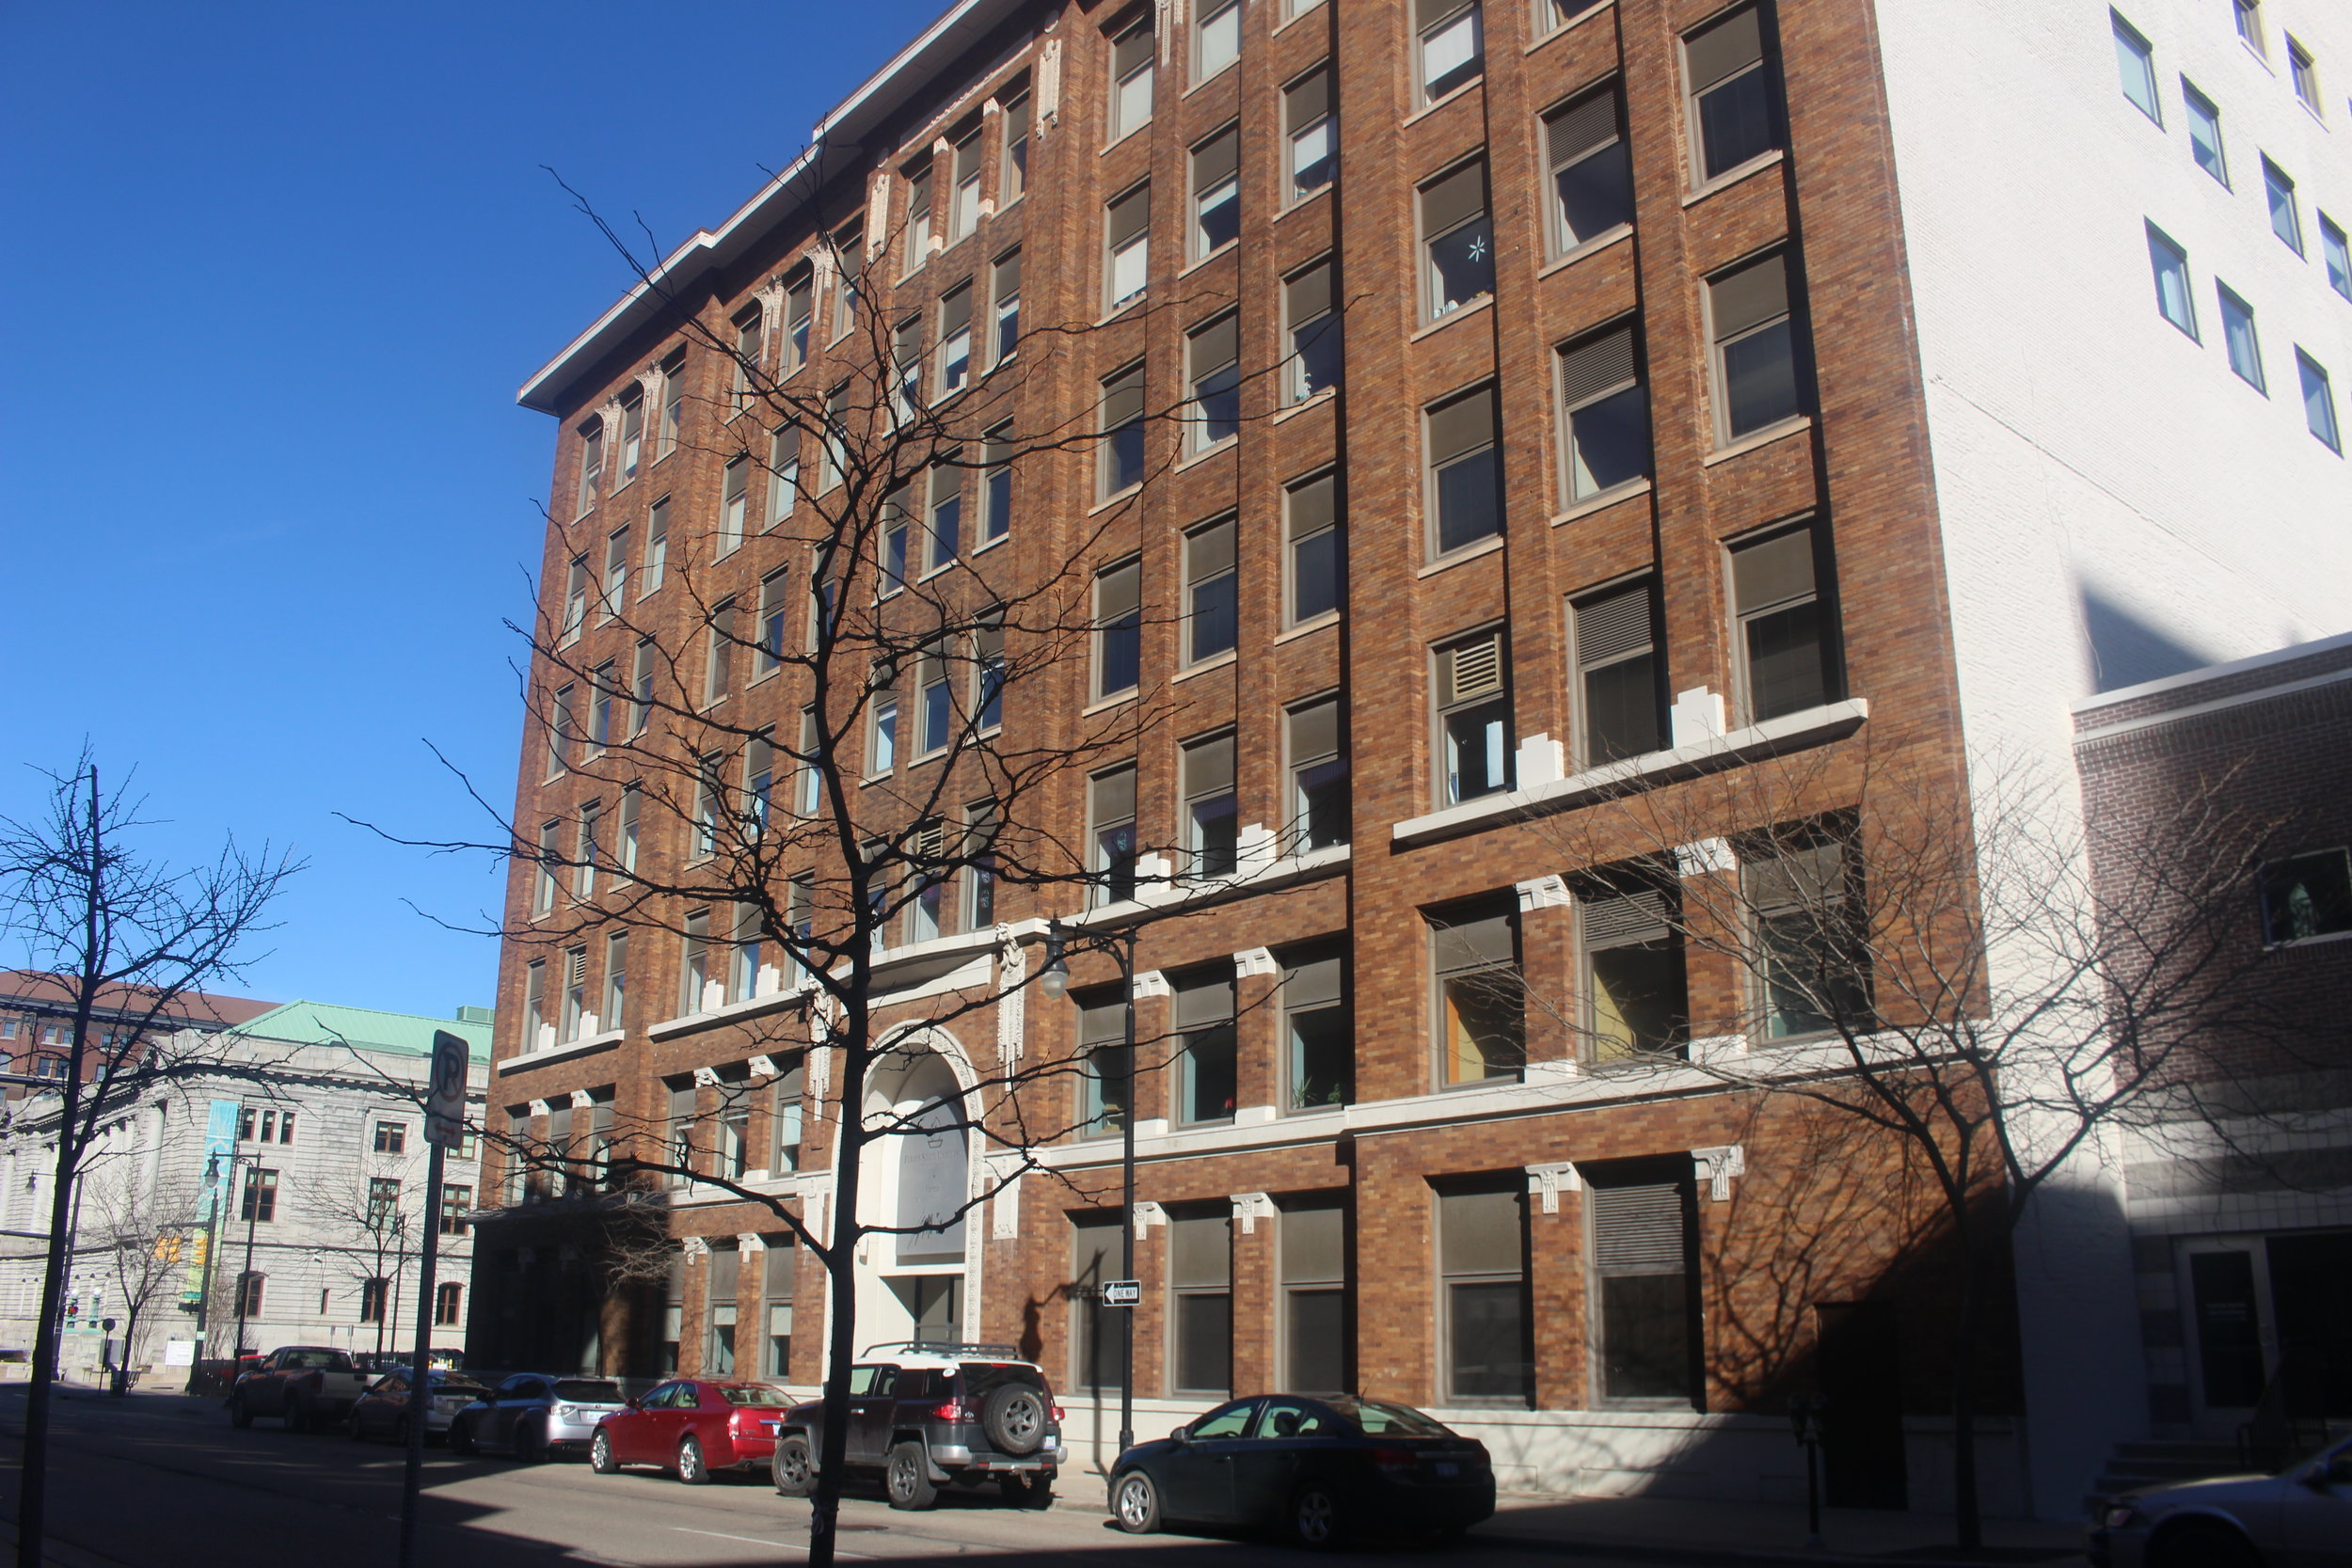 126 IONIA NW AT FOUNTAIN   MANUFACTURERS BUILDING